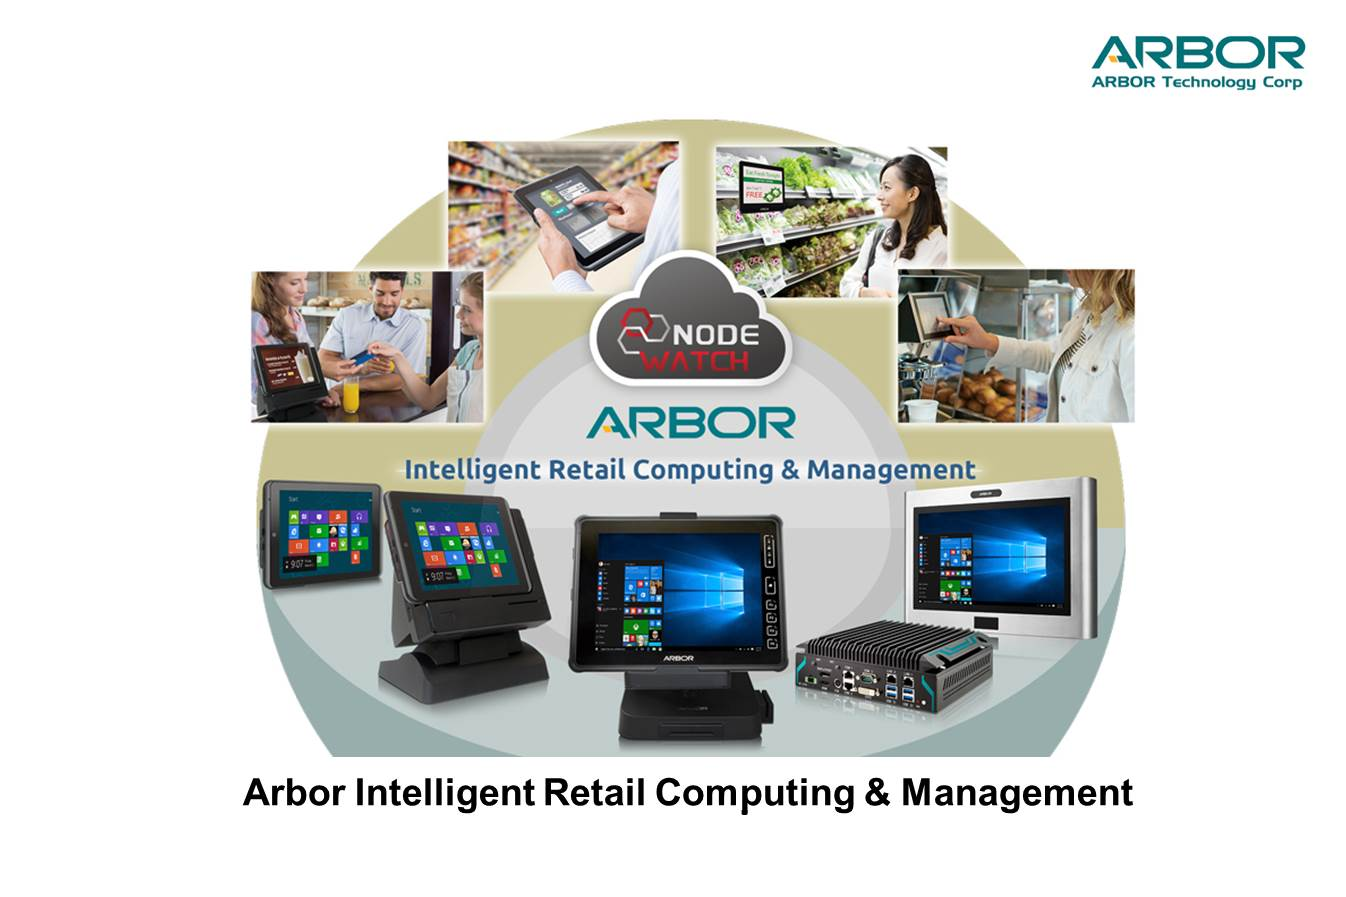 Arbor Intelligent Retail Computing & Management